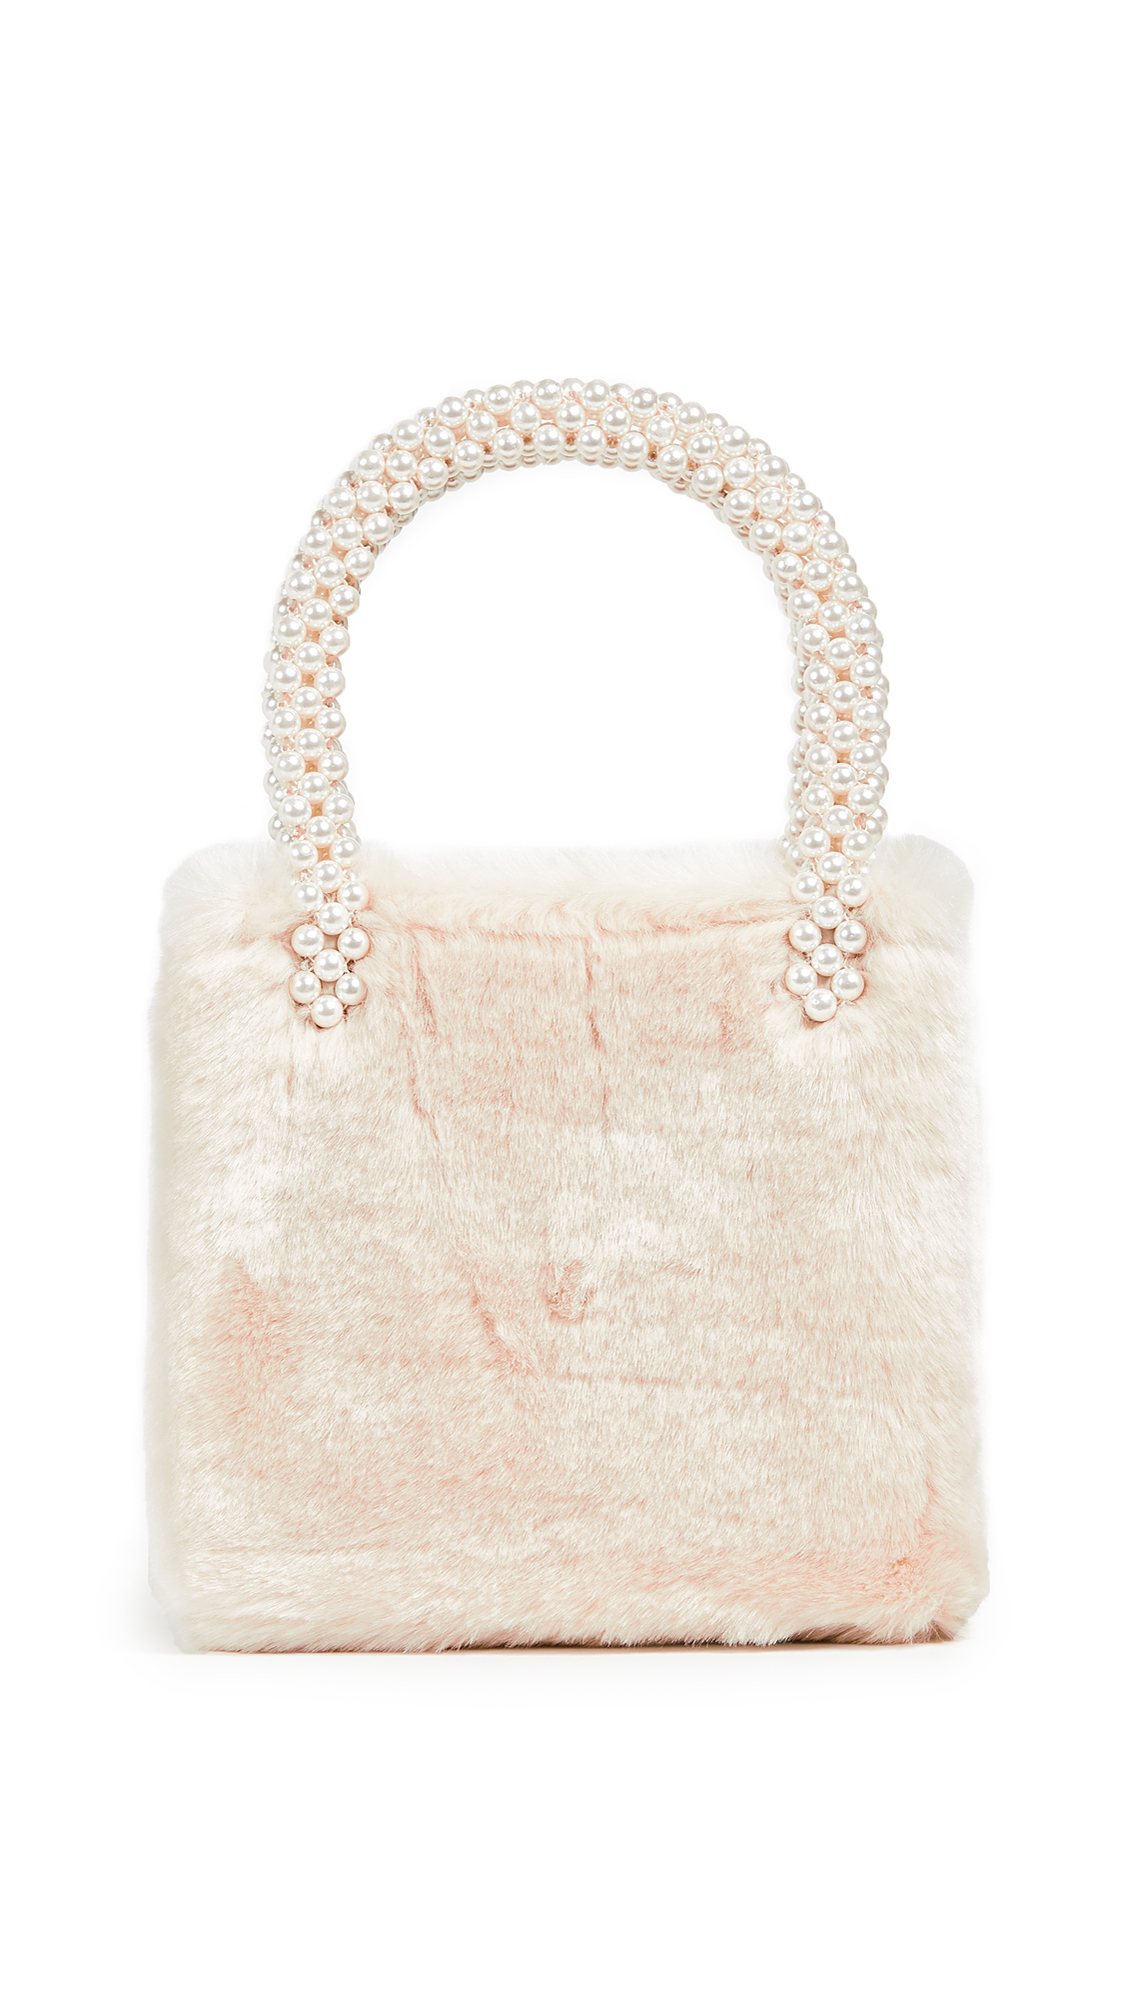 all over beaded bag